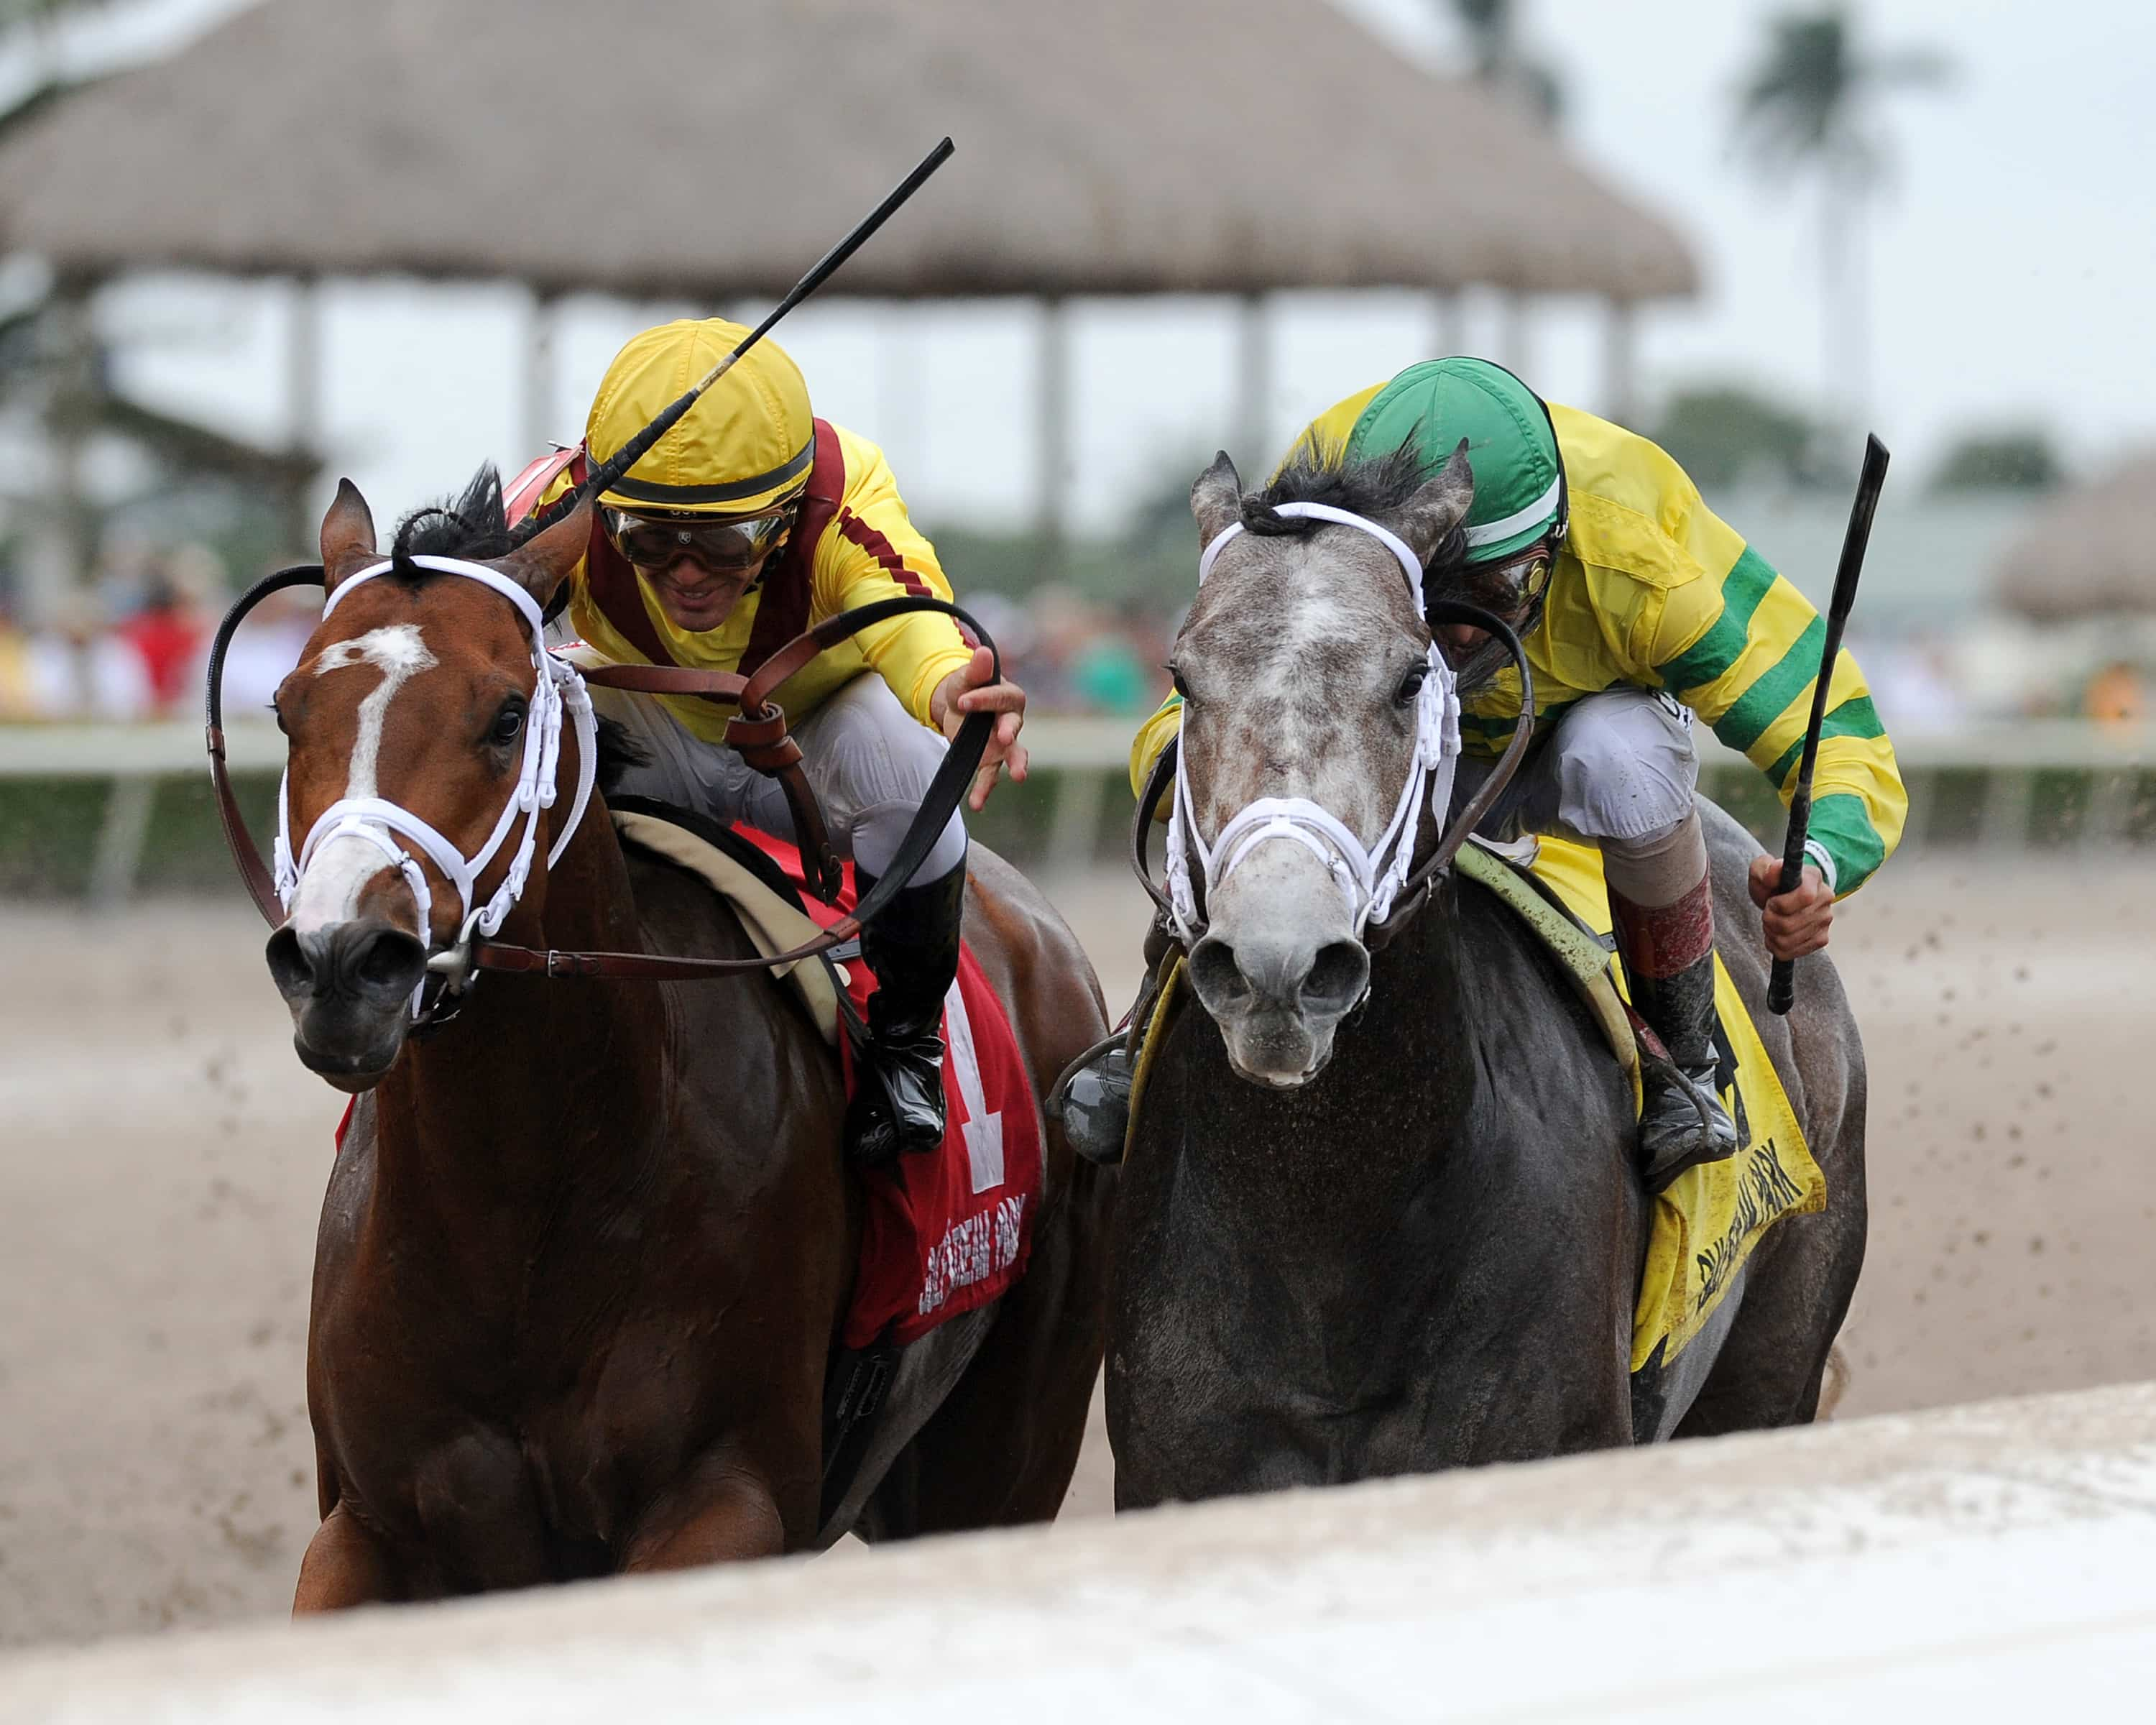 Blofeld passing Stanford in the Gulfstream Park Handicap - Photo Credit: Kenny Martin